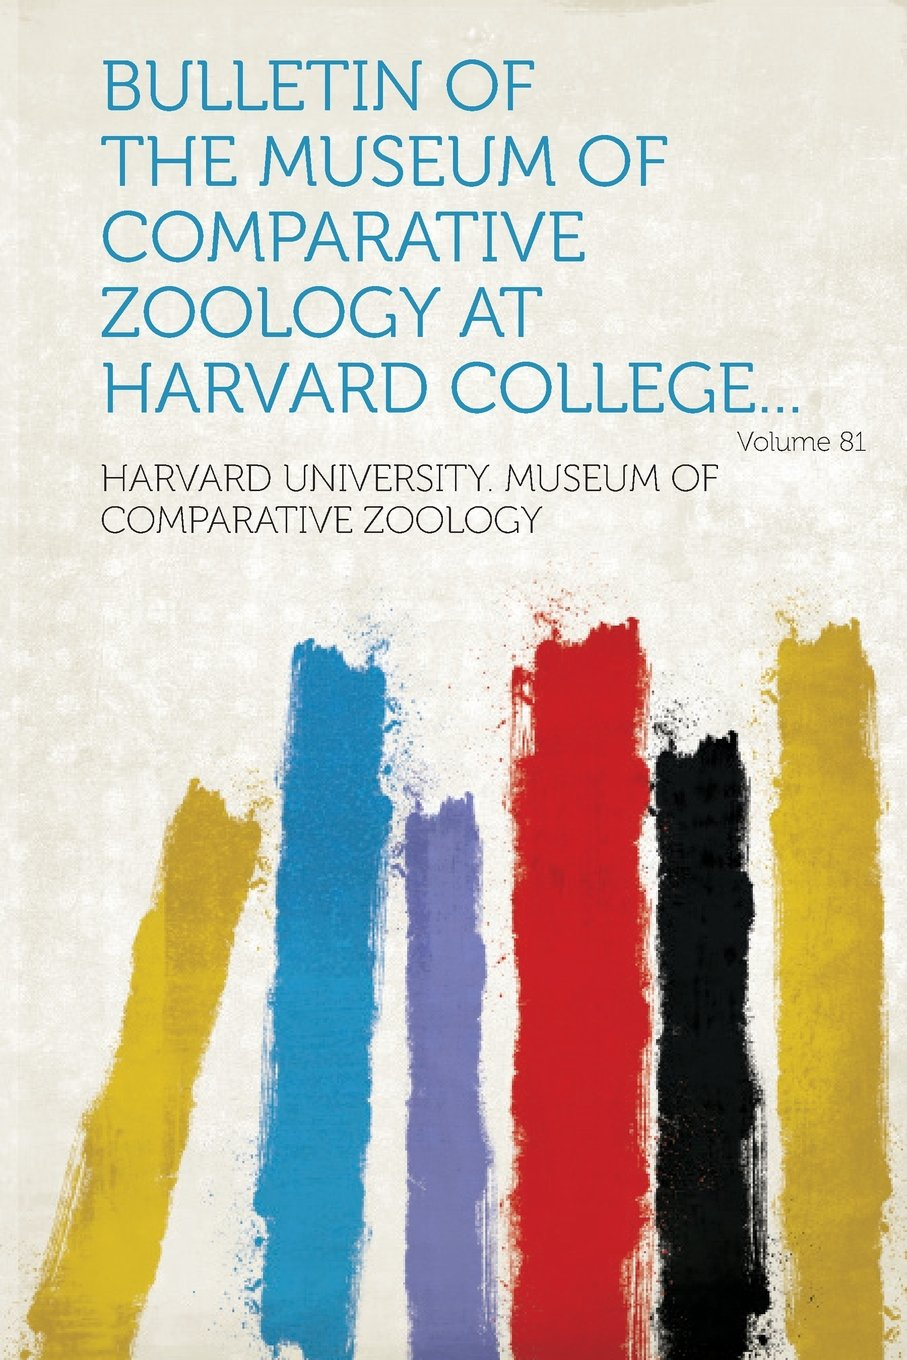 Download Bulletin of the Museum of Comparative Zoology at Harvard College... Volume 81 ebook